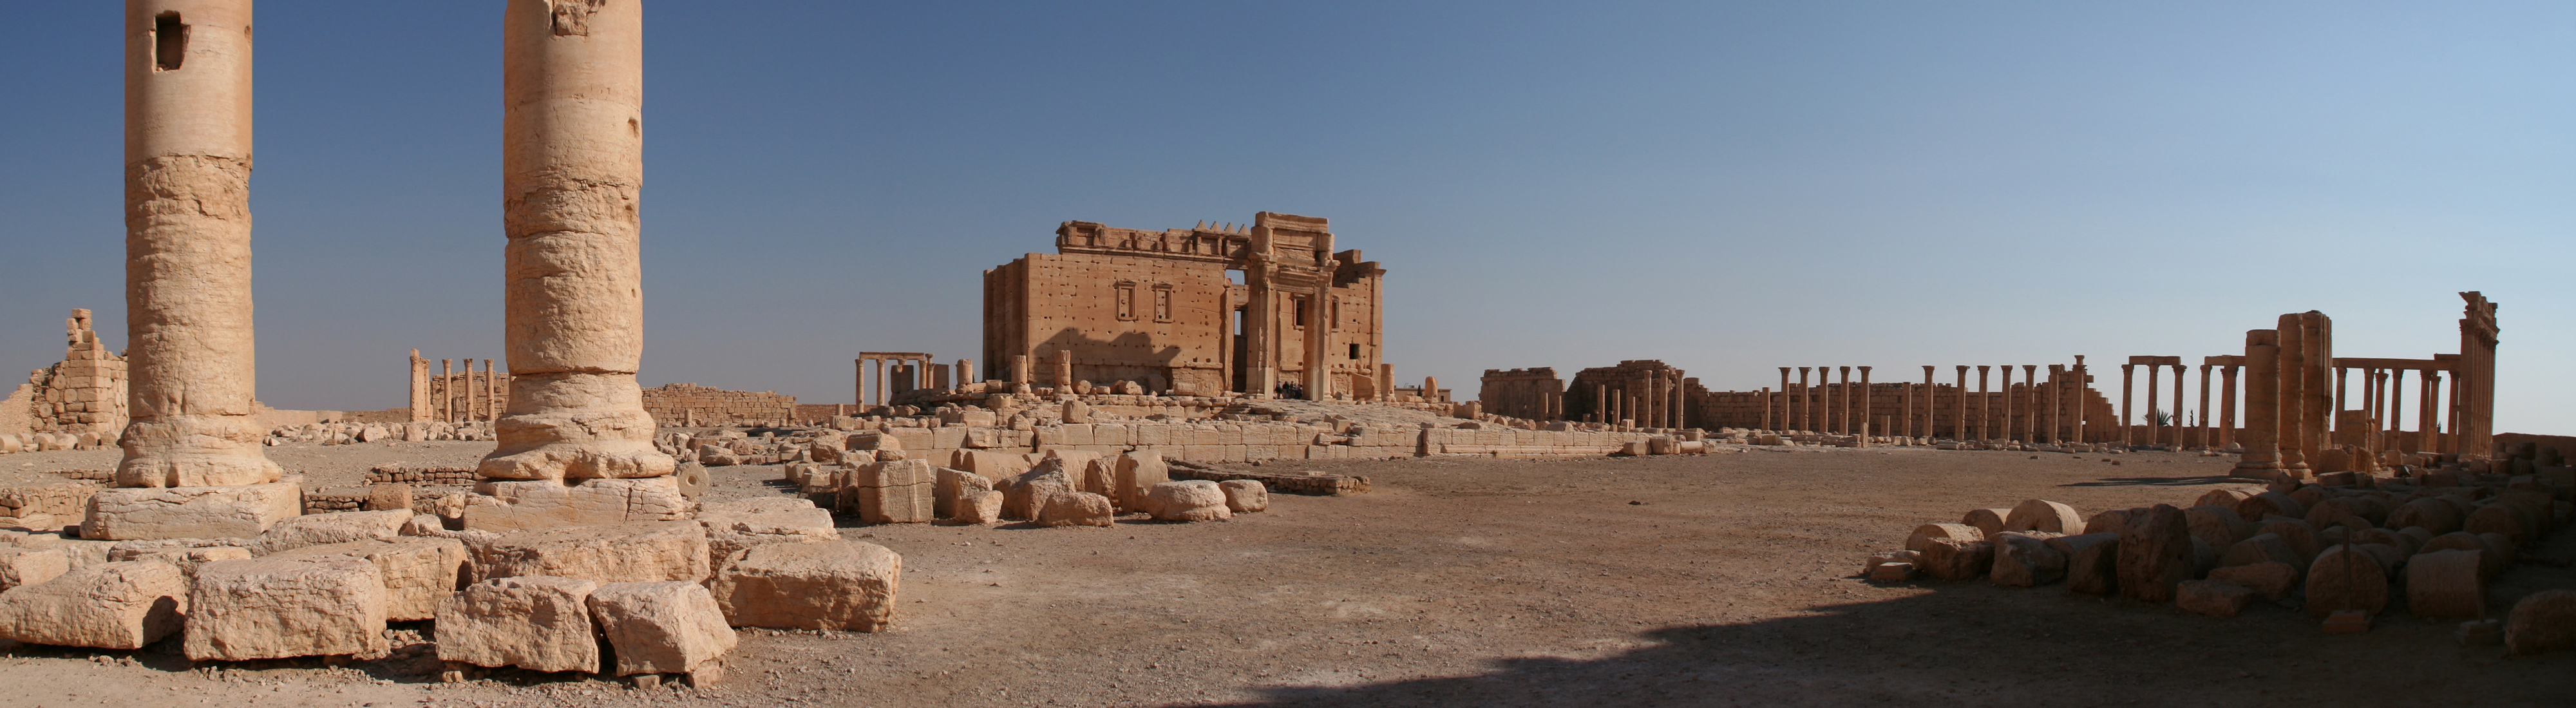 Palmyra_Ruines_Temple_of_Bel.jpg